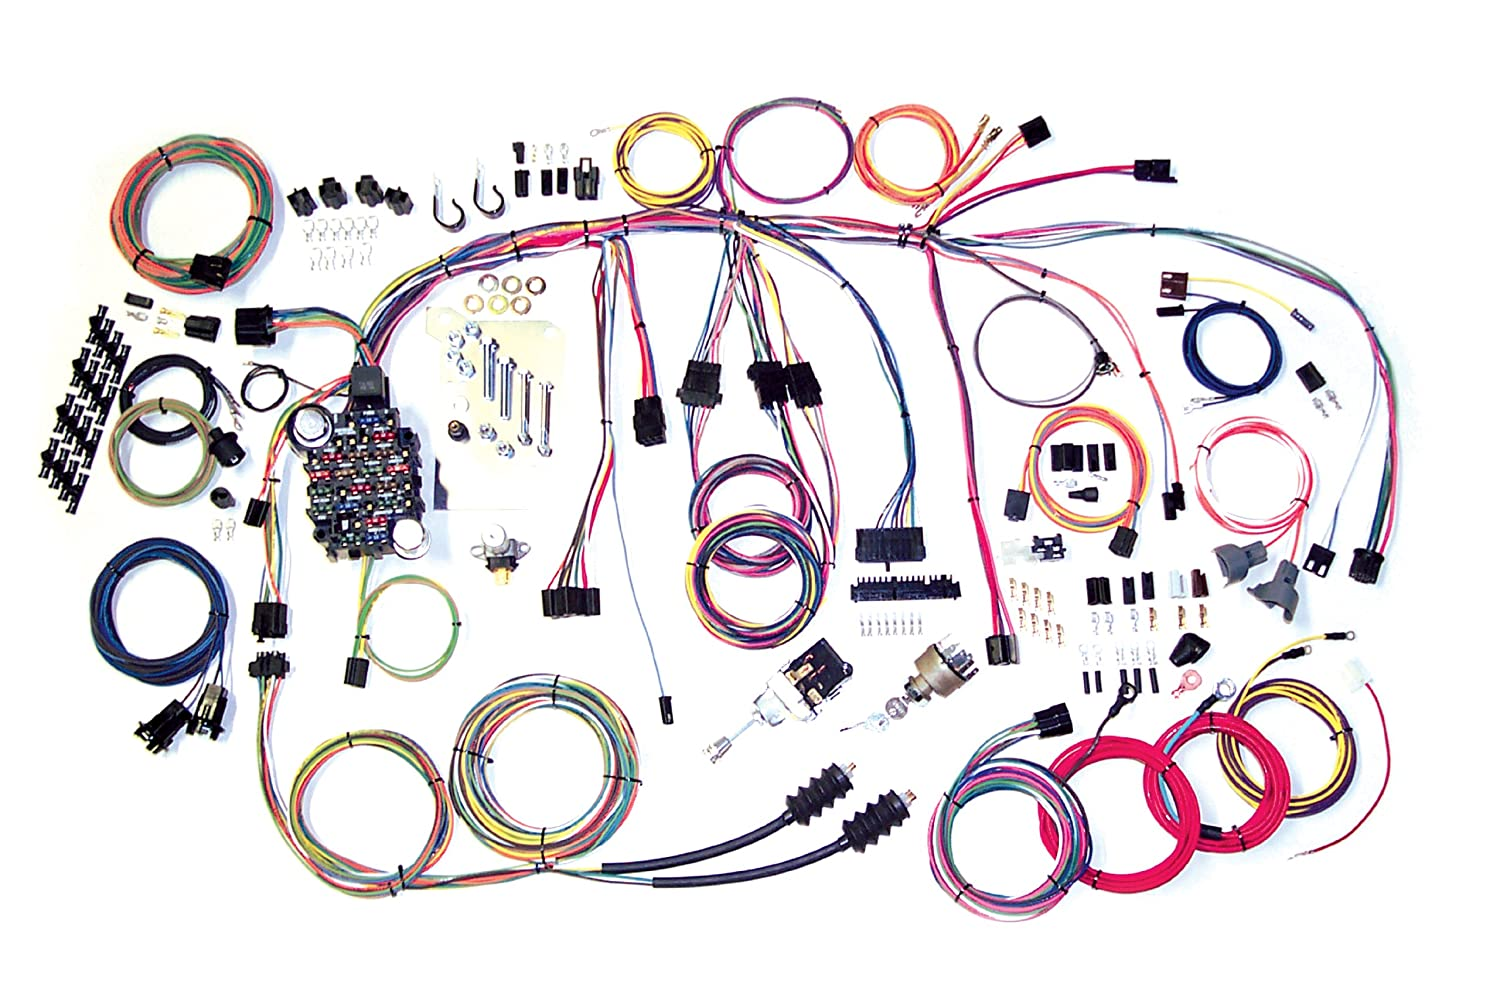 816T8GFu4LL._SL1500_ amazon com american autowire 500560 truck wiring harness for 60 65 chevy wiring harness at suagrazia.org